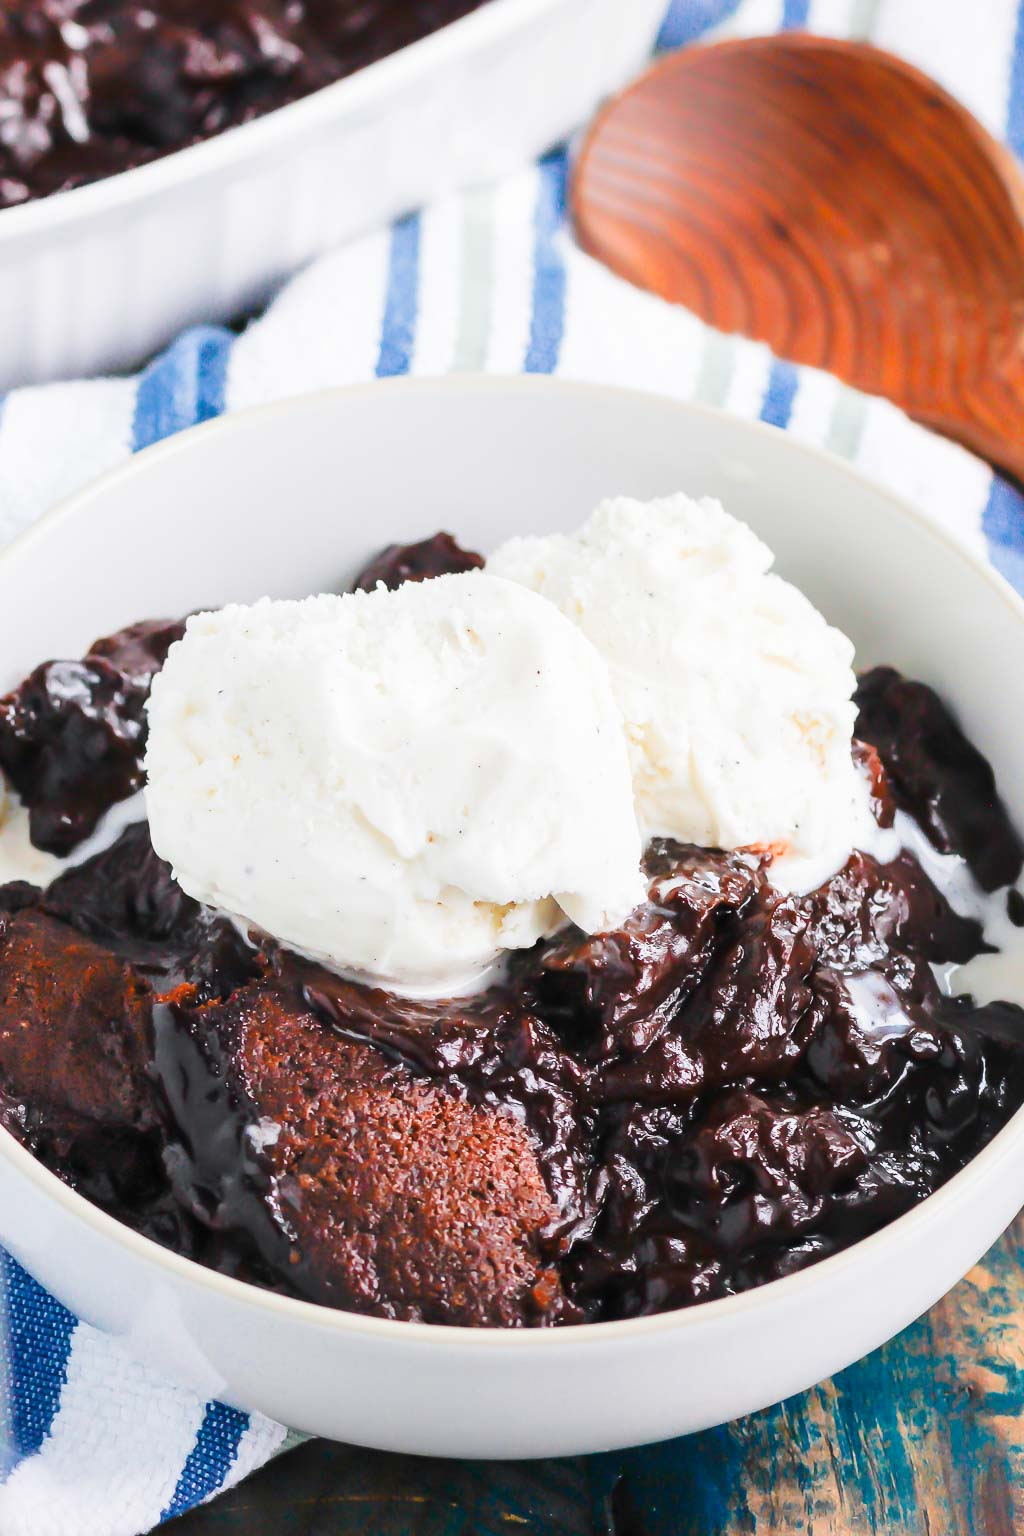 serving of chocolate cobbler topped with ice cream in a white bowl. a wooden spoon rests in the background.